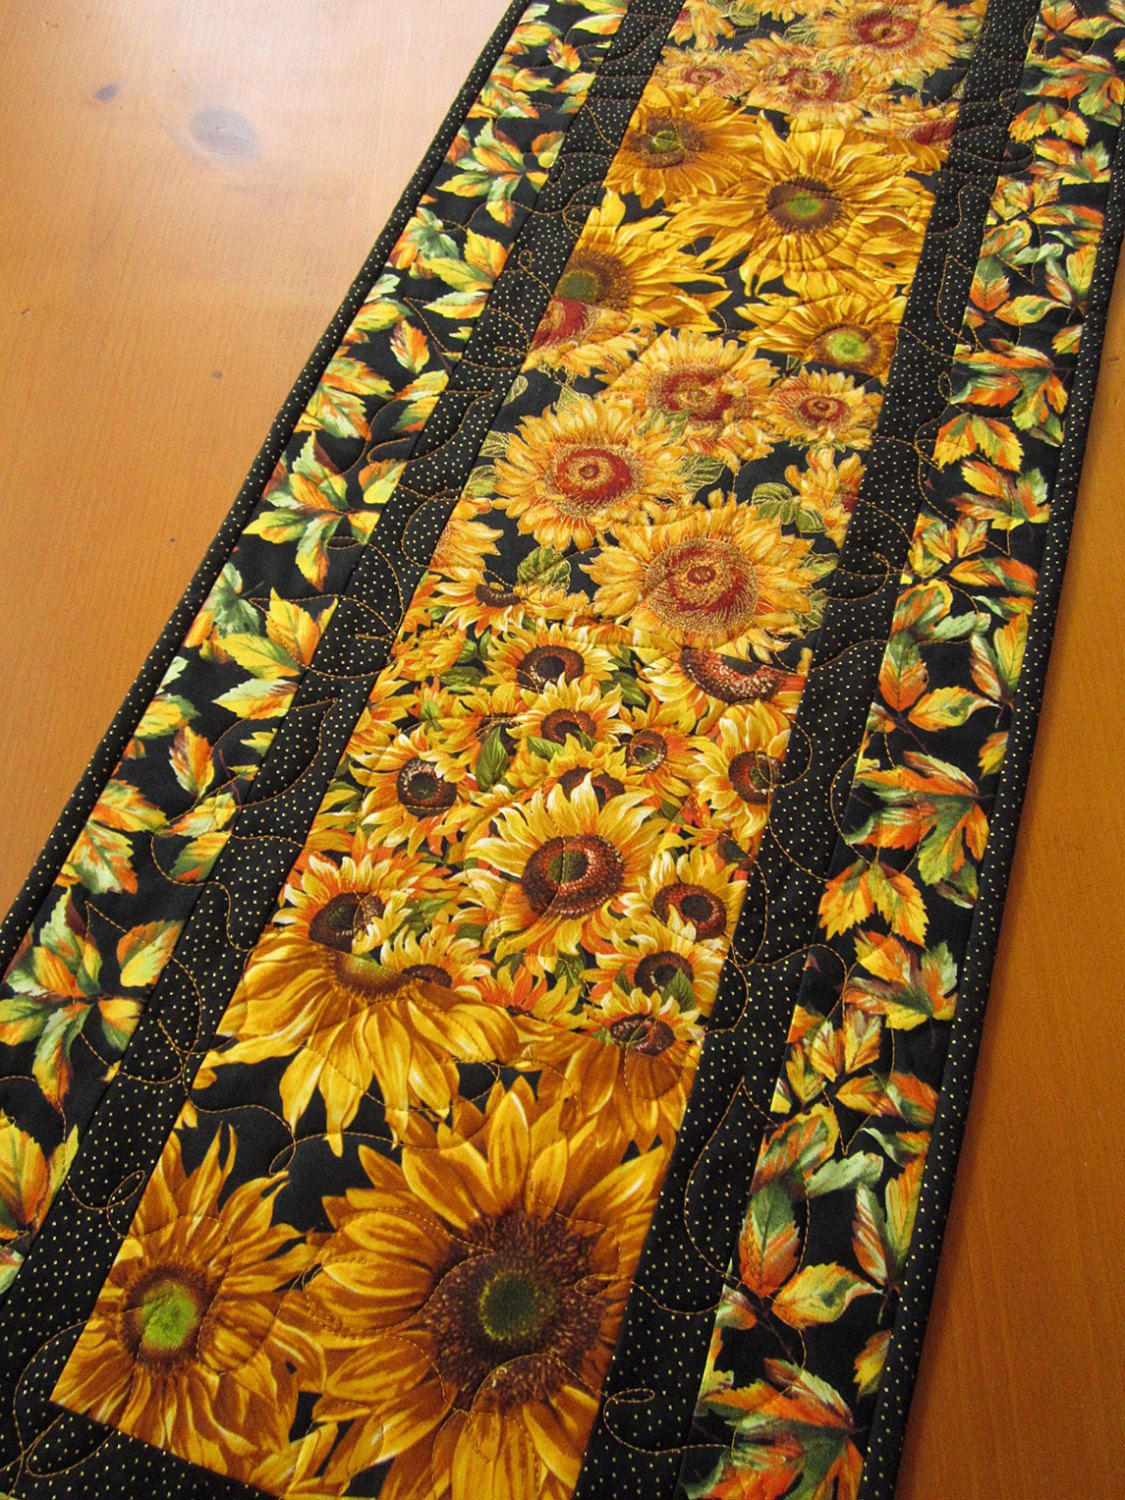 Charming Handmade Quilted Table Runner Sunflowers   $38.00   Handmade Quilting,  Crafts And Unique Gifts By